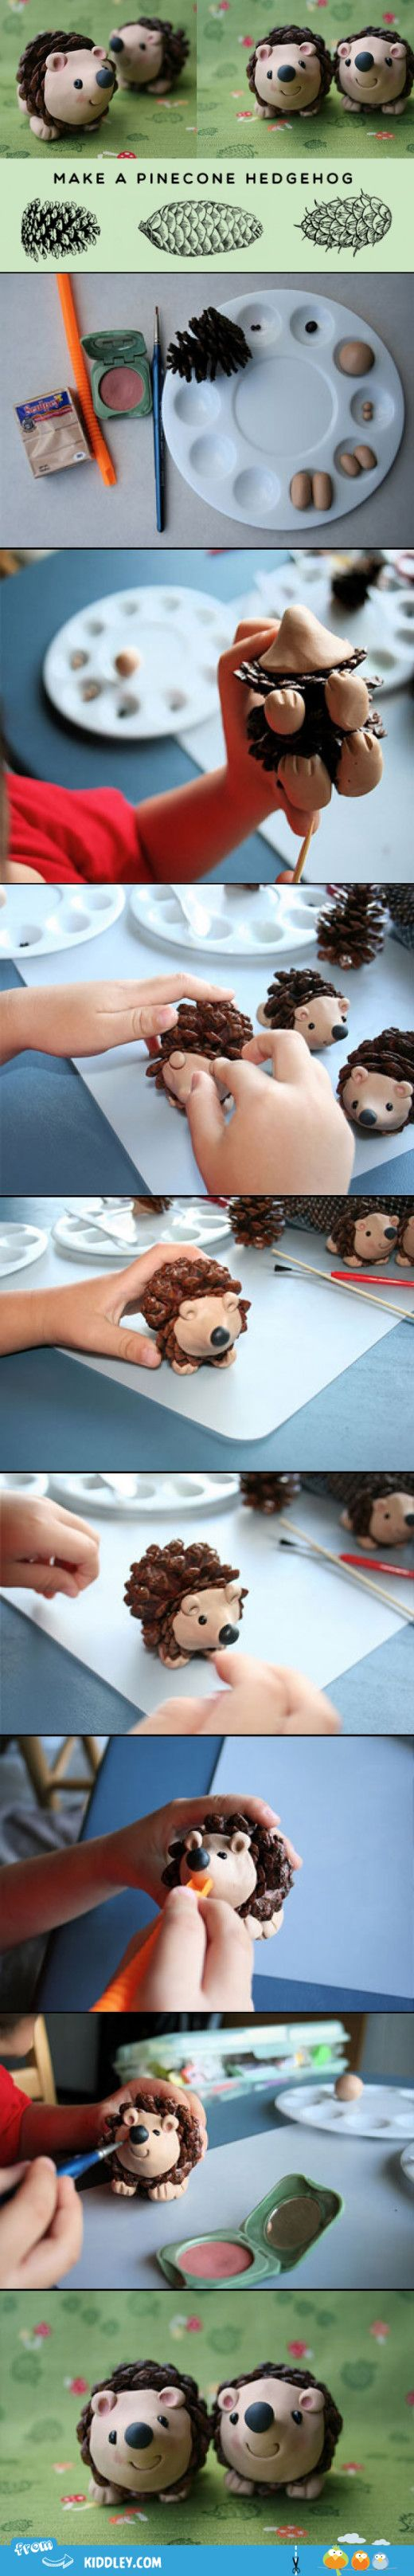 pinecone hedgehog. what a fun idea @Emma Zangs Zangs MacDonald , @catherine gruntman gruntman MacDonald